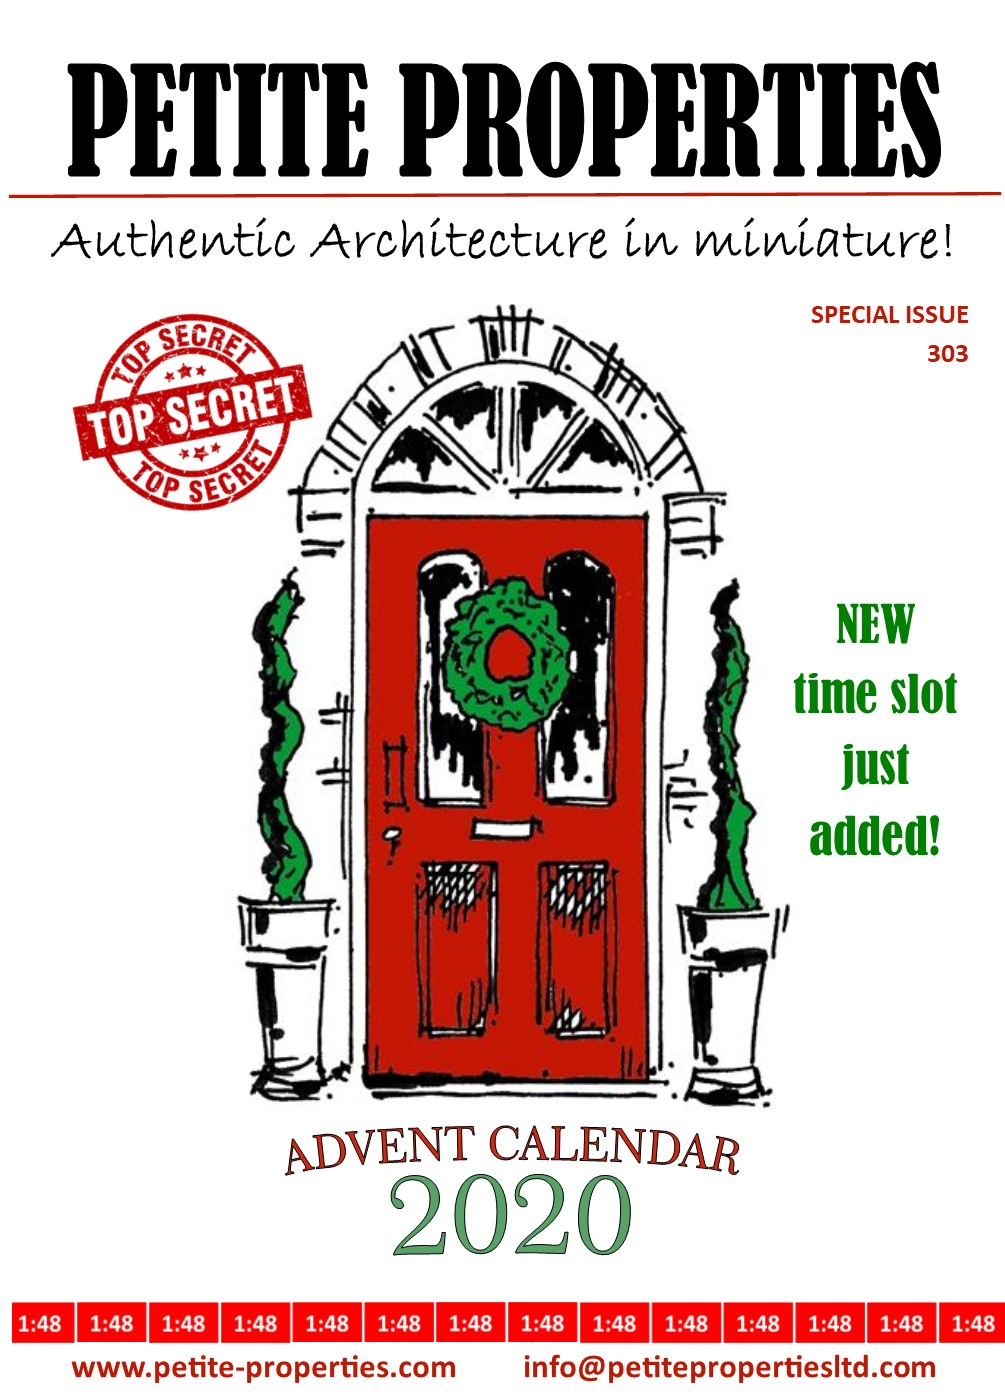 Advent Calendar - Special Issue 303